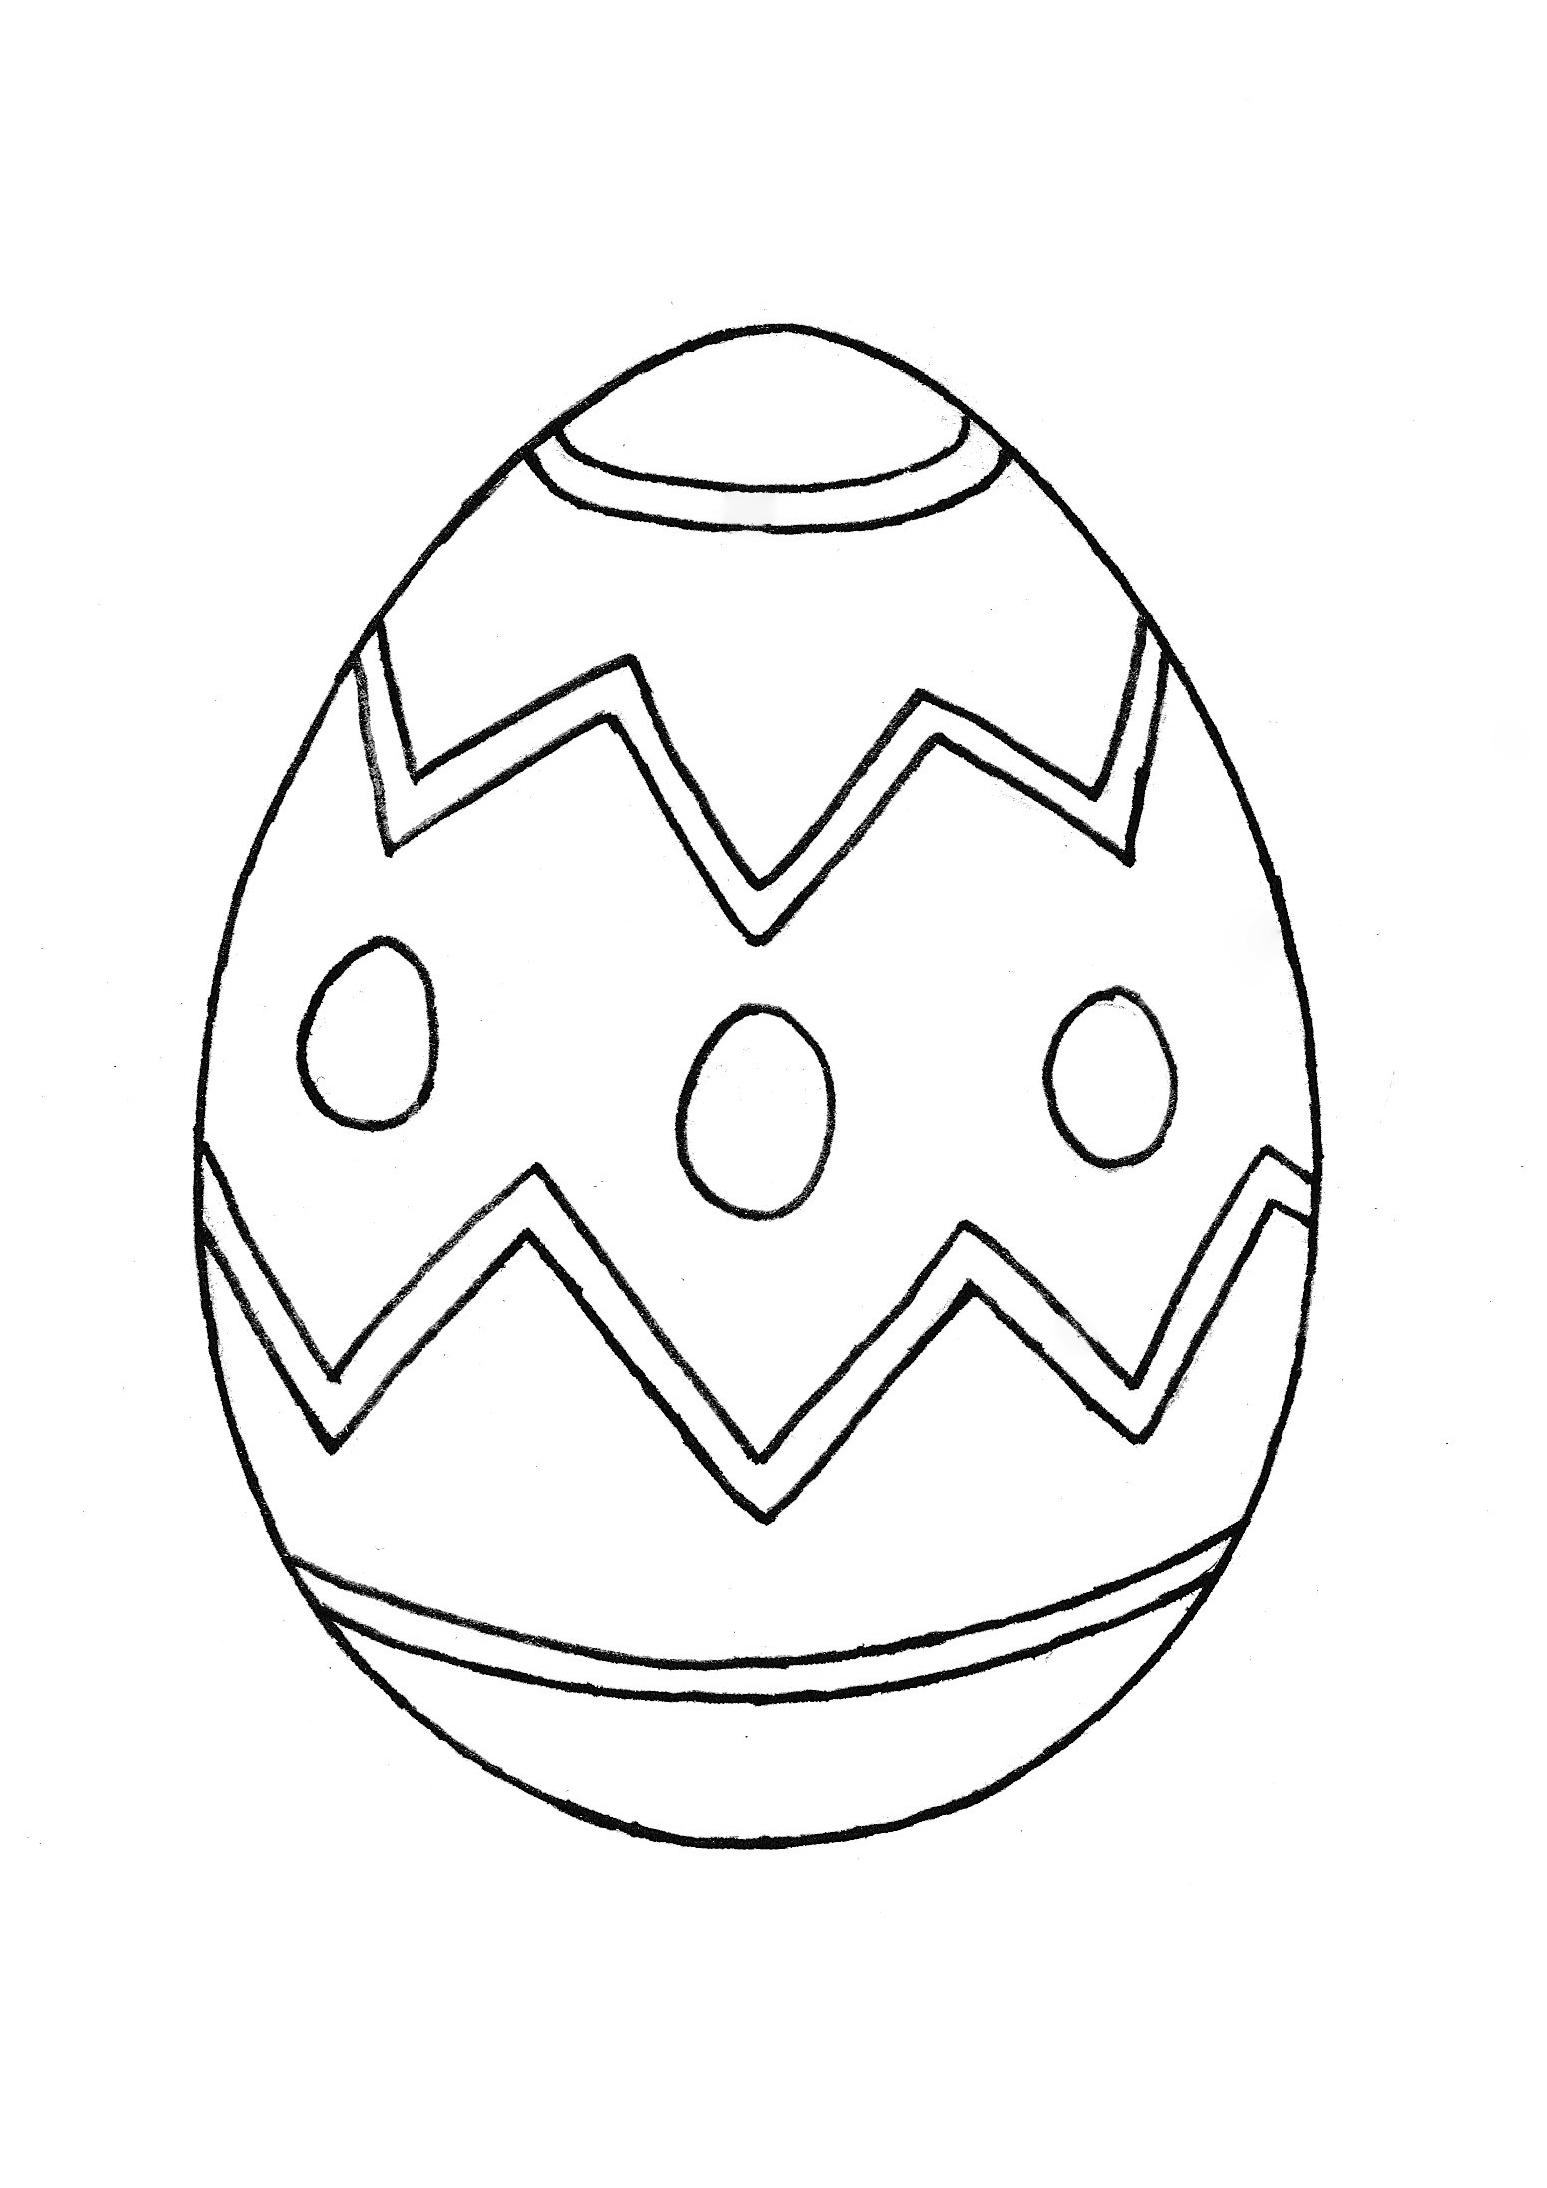 easter egg templates easter egg templates for fun easter crafts skip to my lou easter egg templates